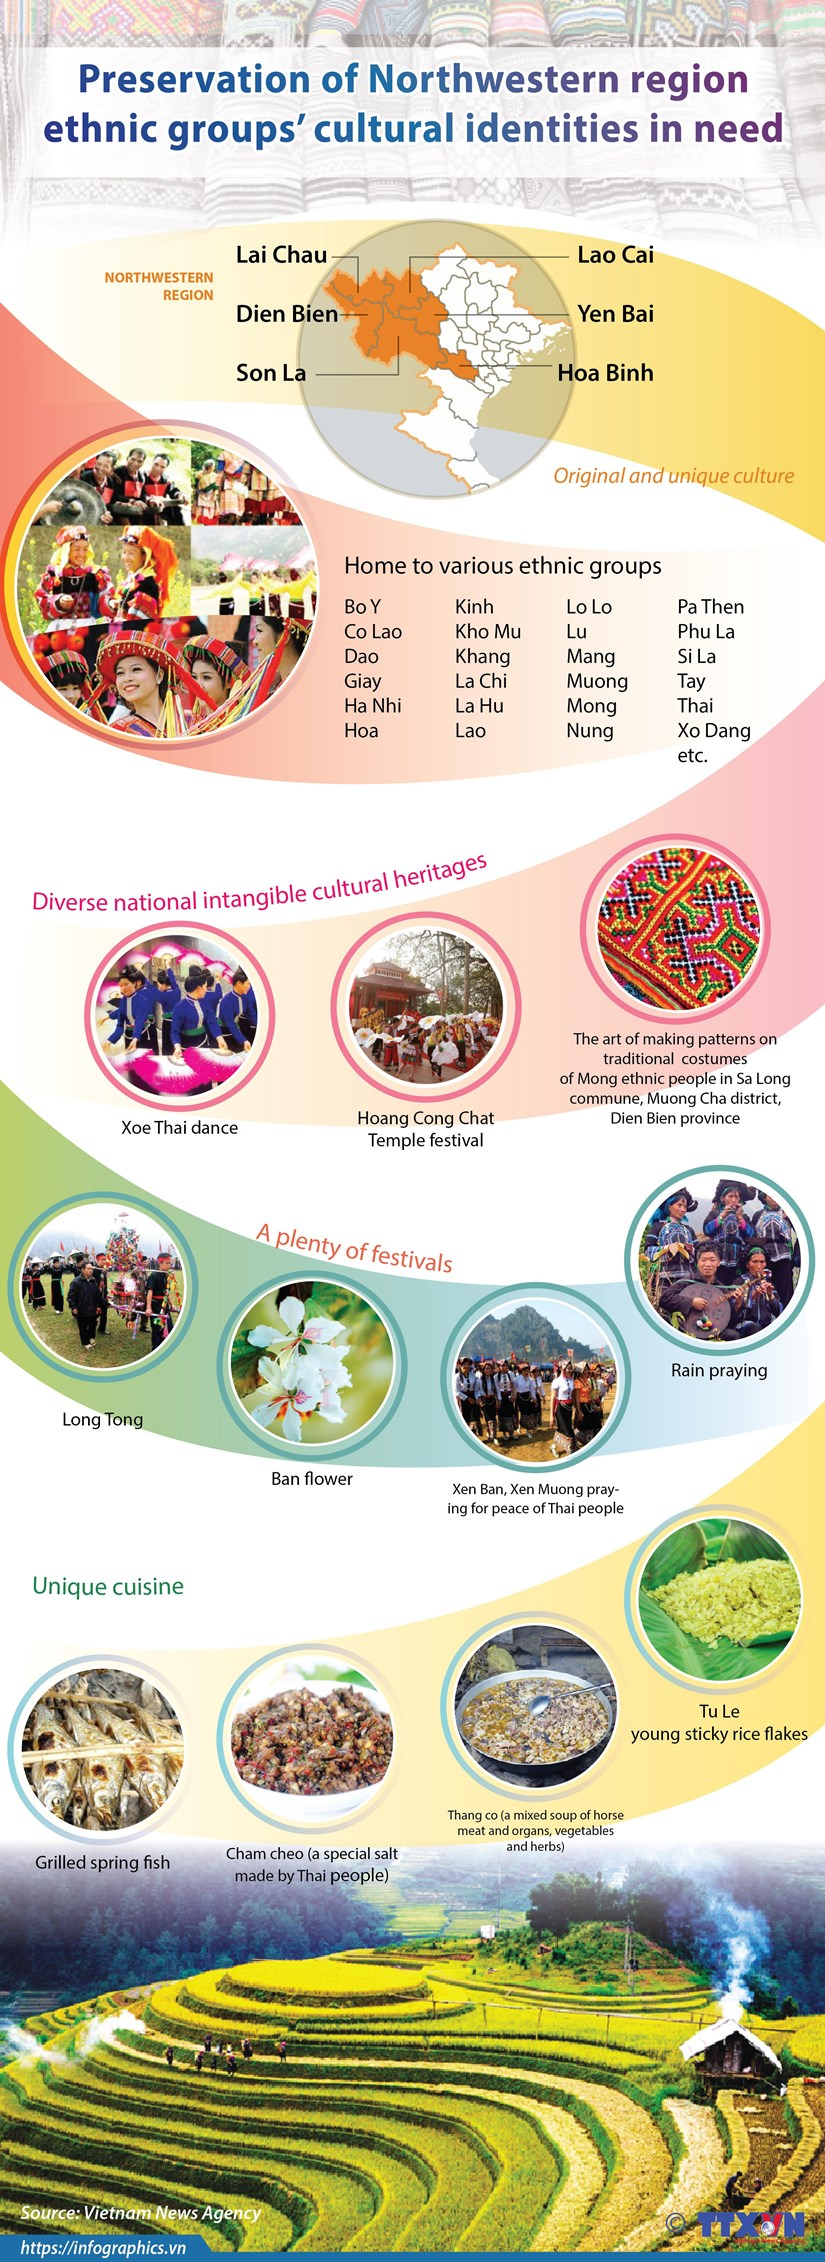 Preservation of Northwestern region ethnic groups'cultural identities hinh anh 1